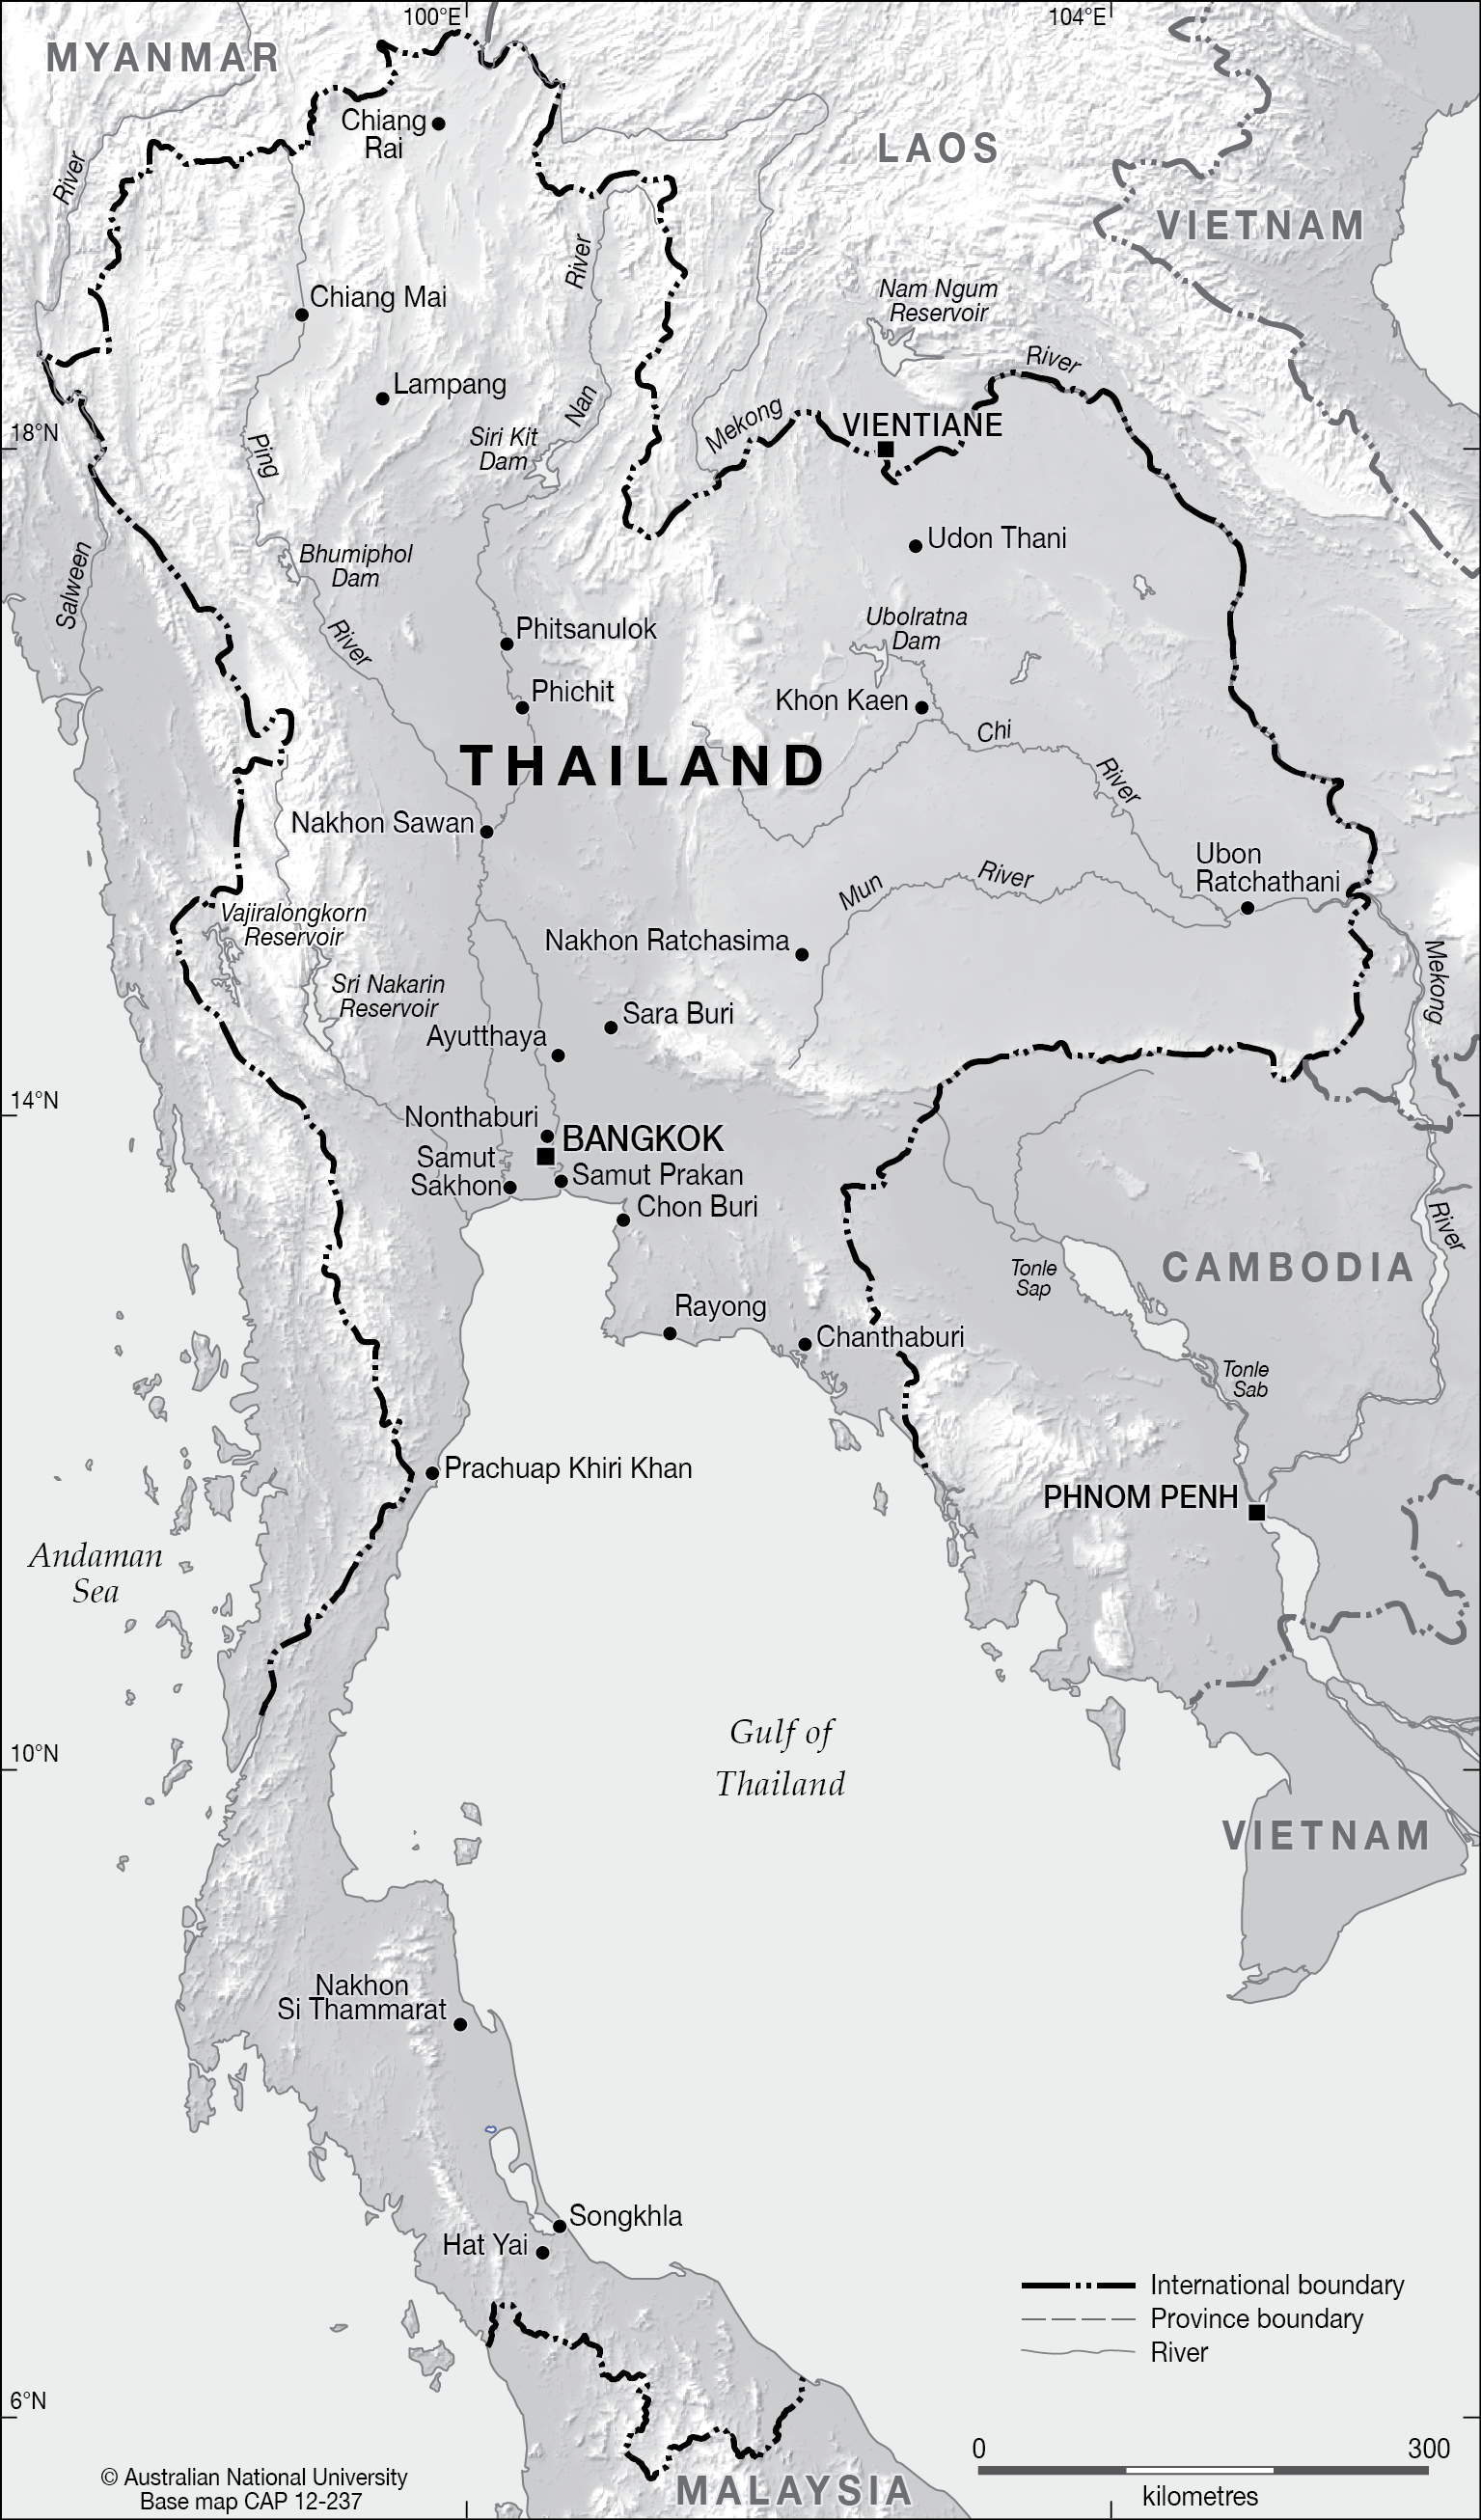 Thailand base cartogis services maps online anu map png 49228 kb elevation map gumiabroncs Gallery